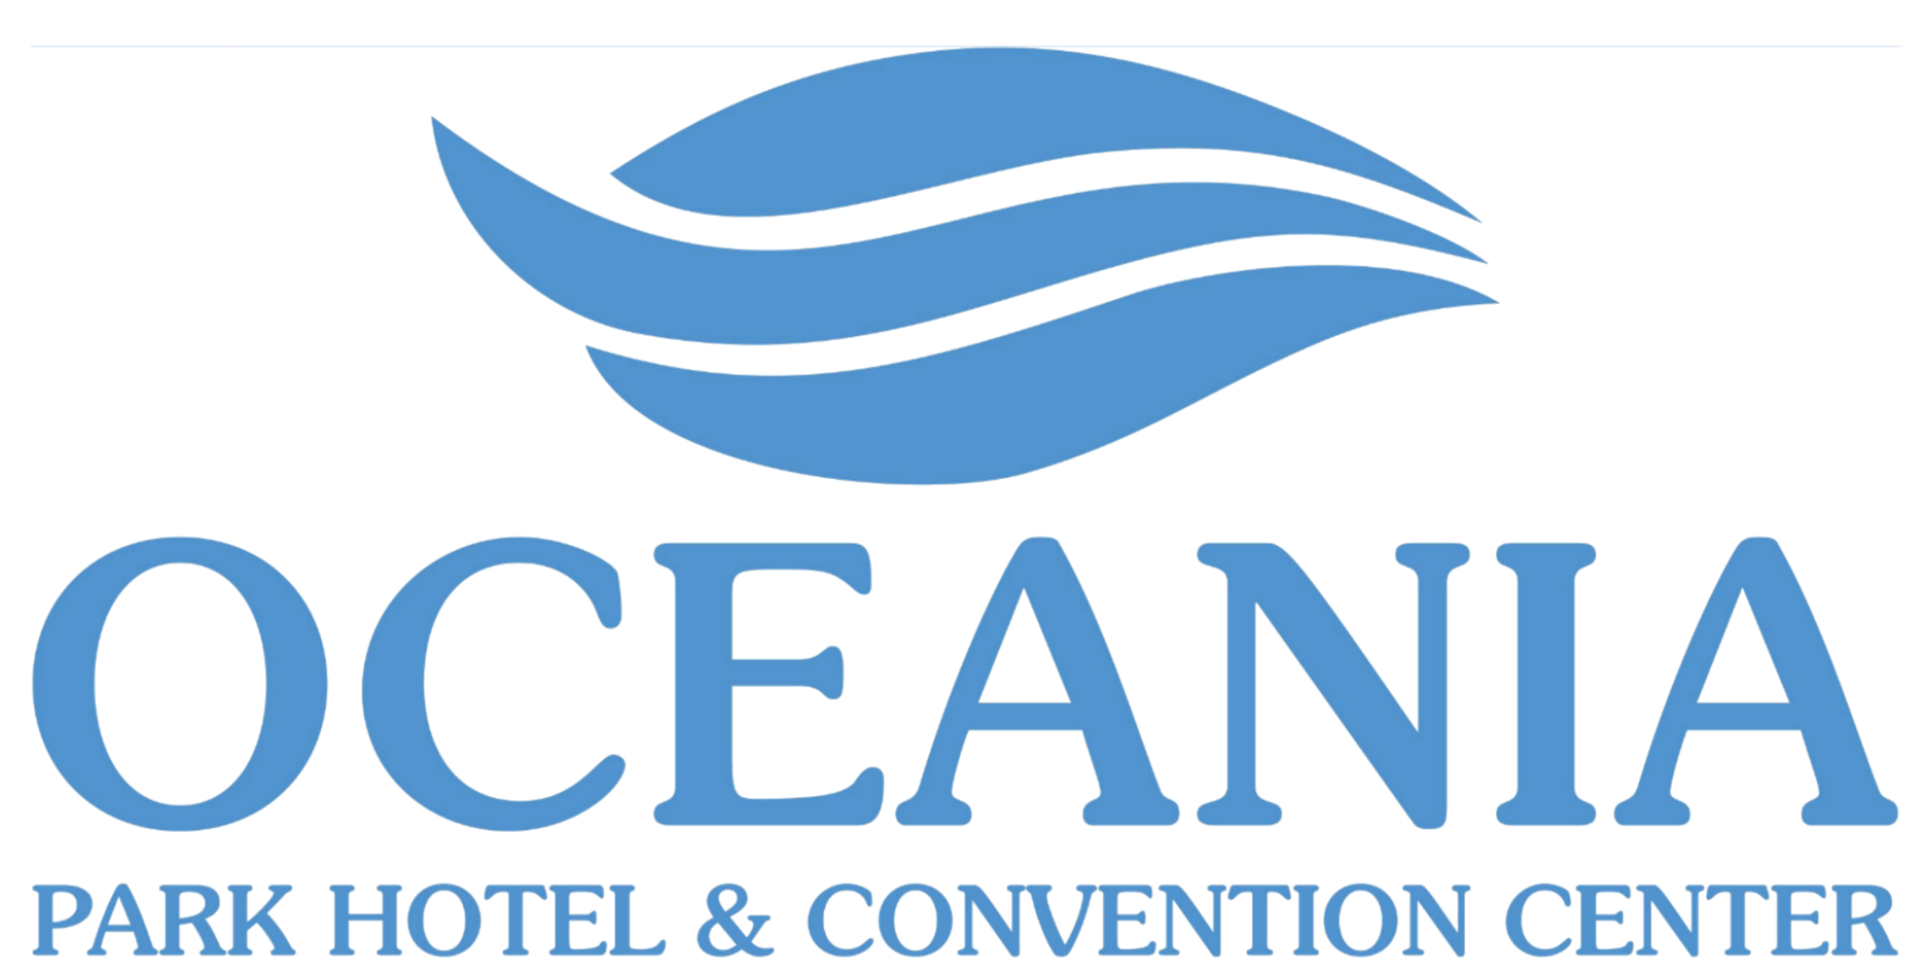 Oceania Park Hotel & Convention Center